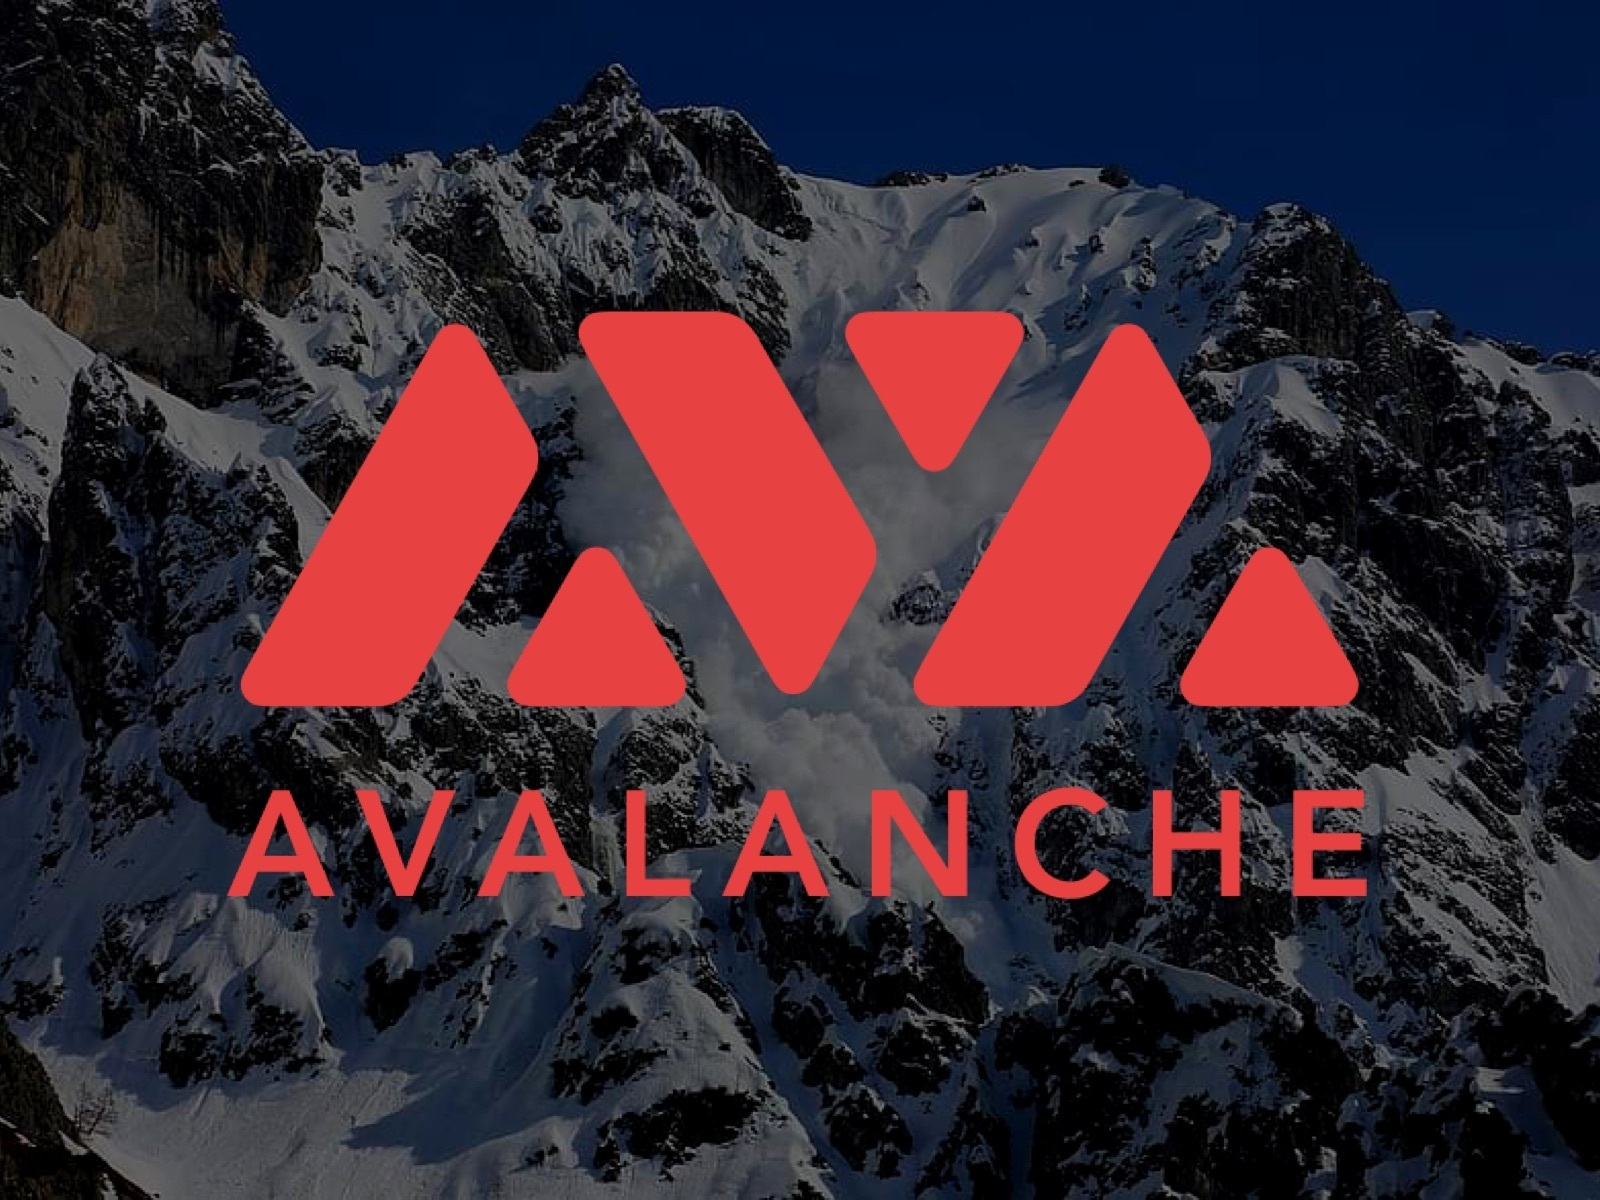 Digital Euros (EUR), Swiss Francs (CHF), and more coming to Avalanche in Q1 2021 - AZCoin News